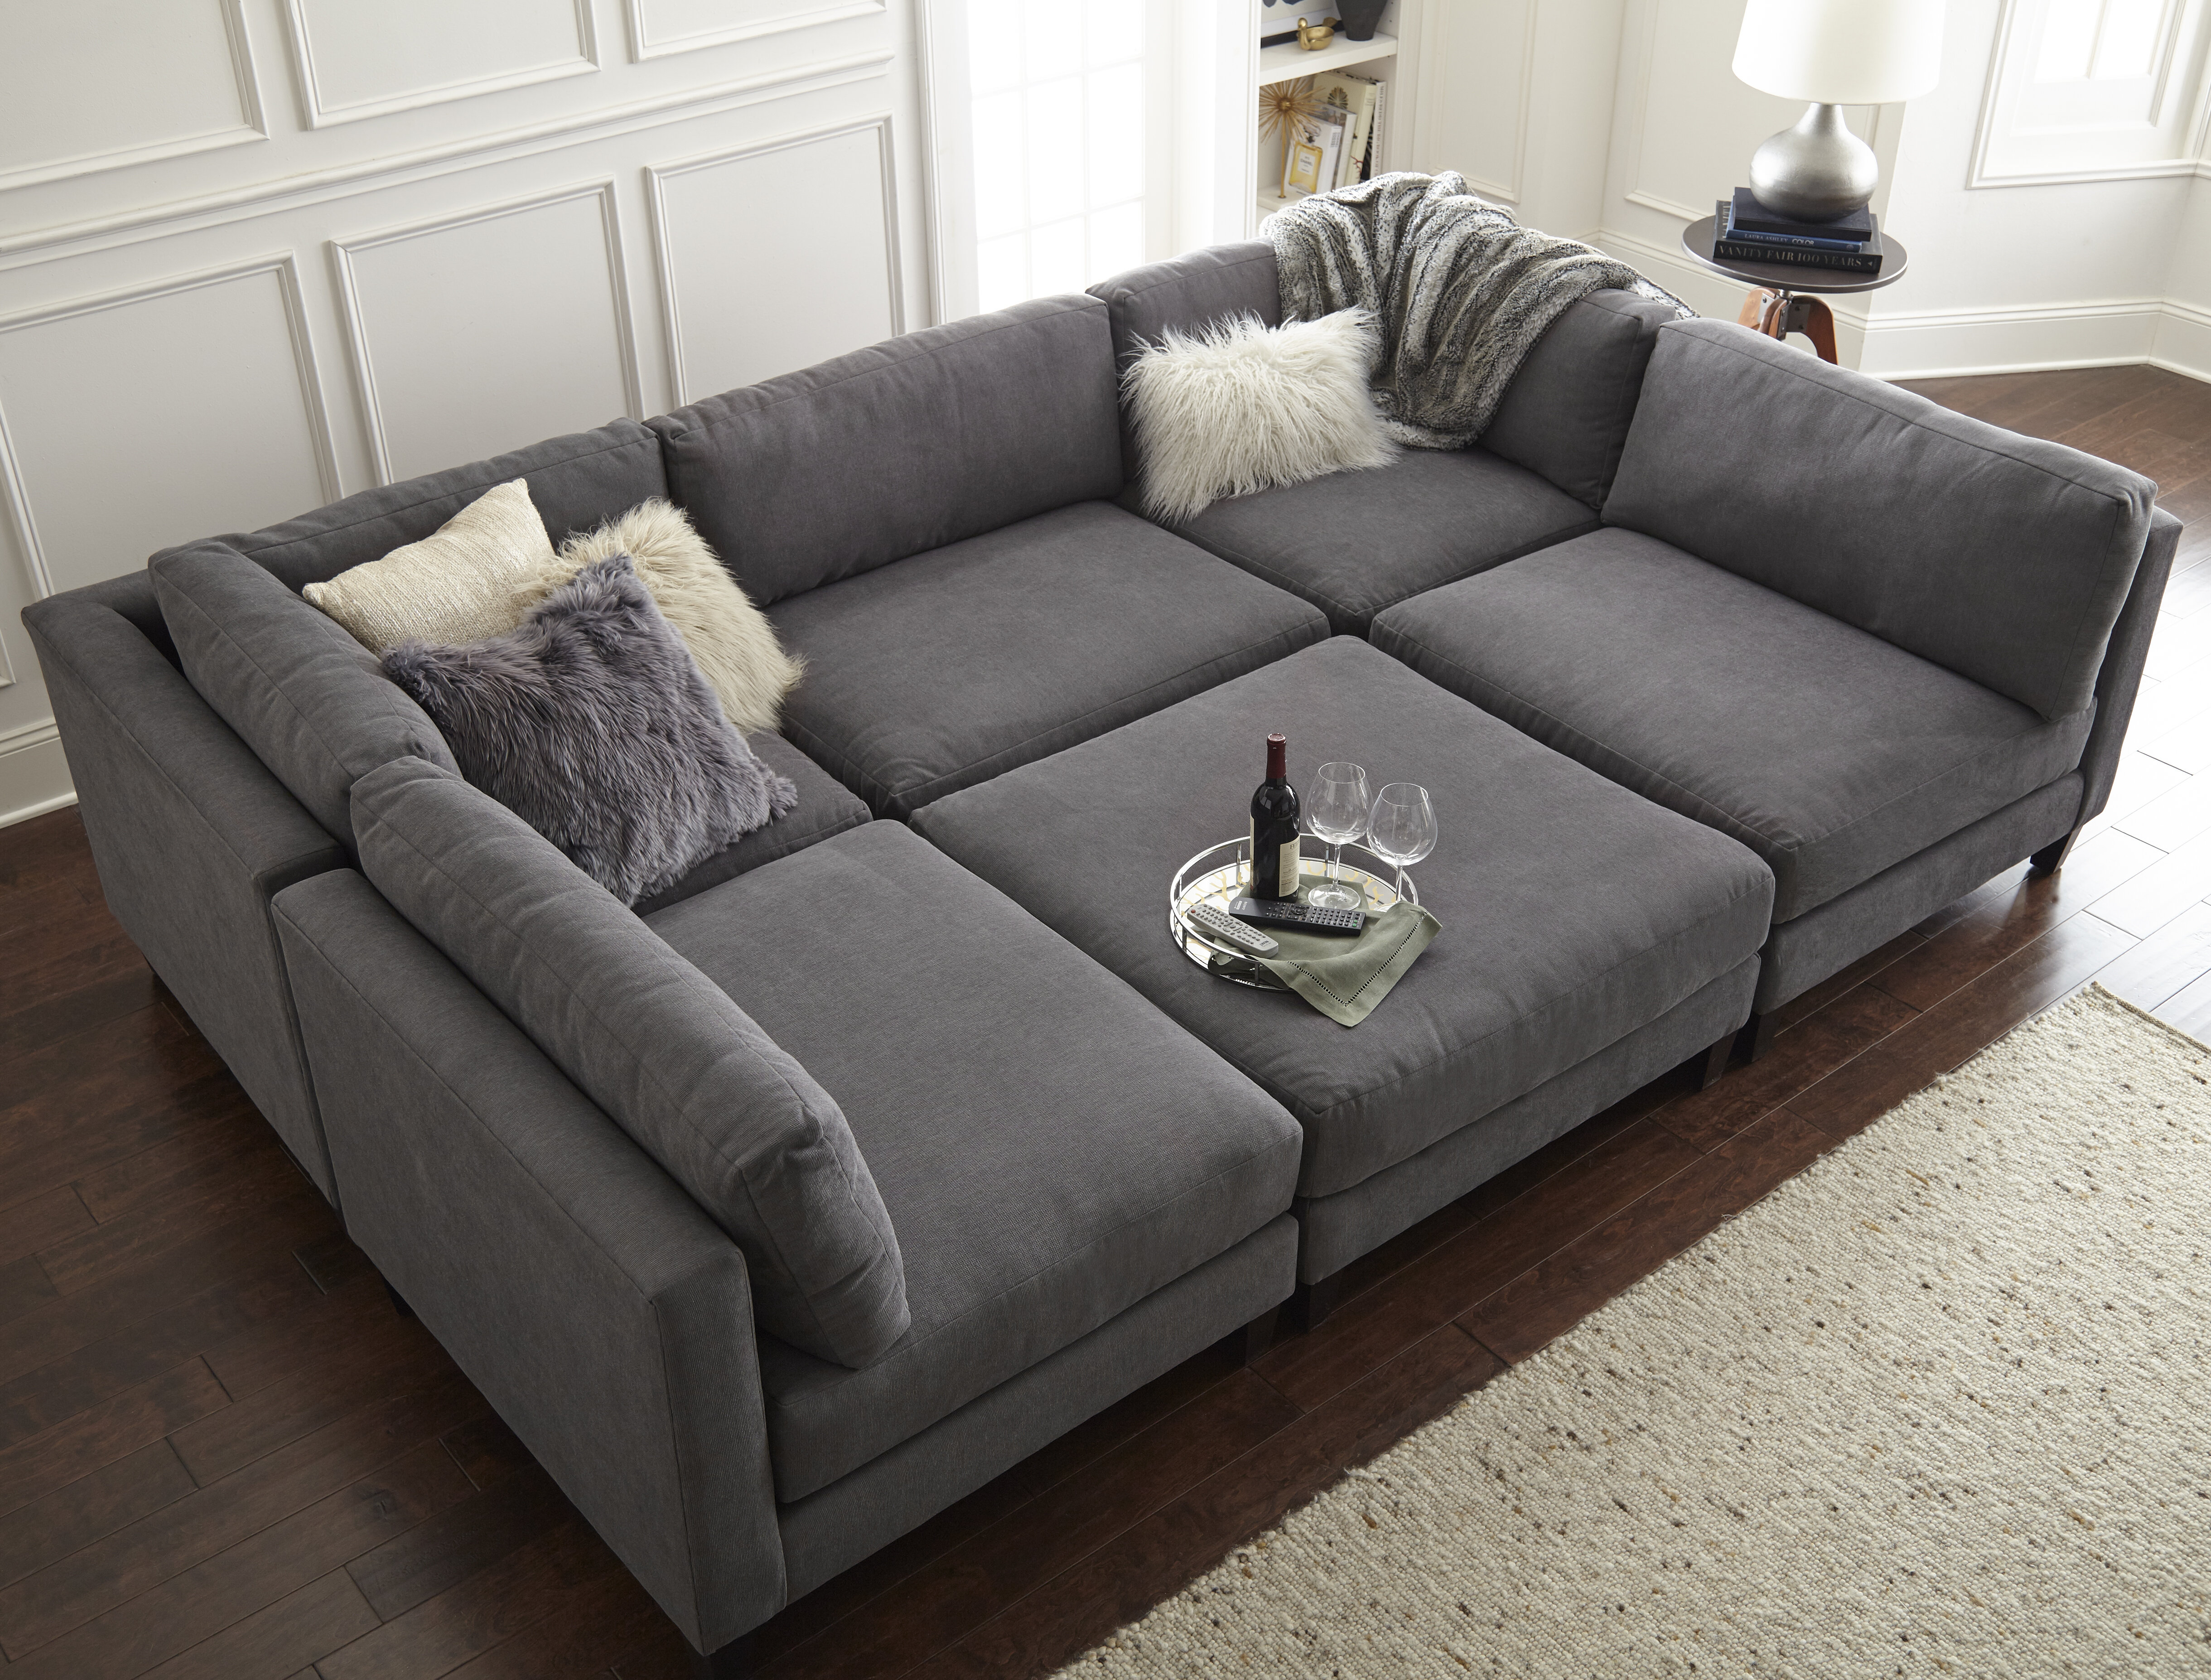 Attractive Home By Sean U0026 Catherine Lowe Chelsea Sleeper Sectional With Ottoman U0026  Reviews | Wayfair